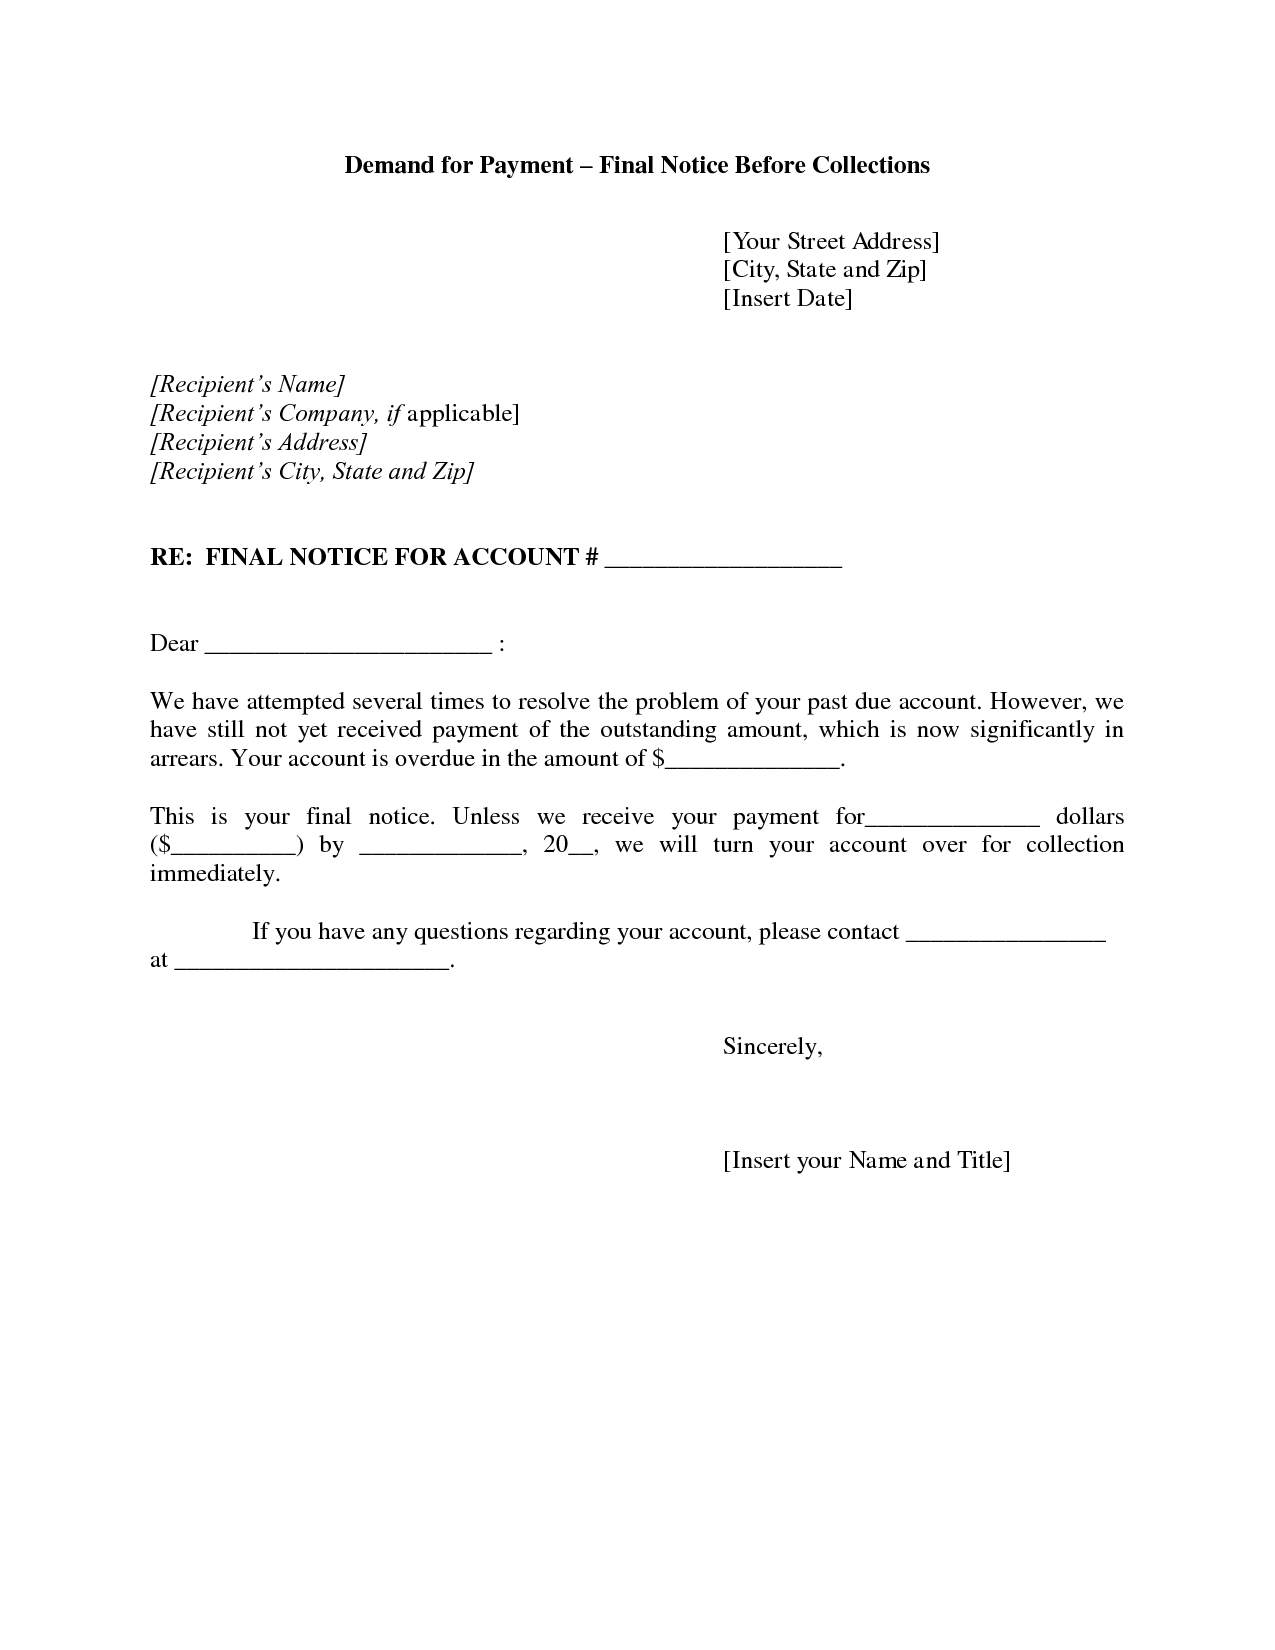 Resume For Debt Collector Final Notice Collection Letter This Letter Is The Final